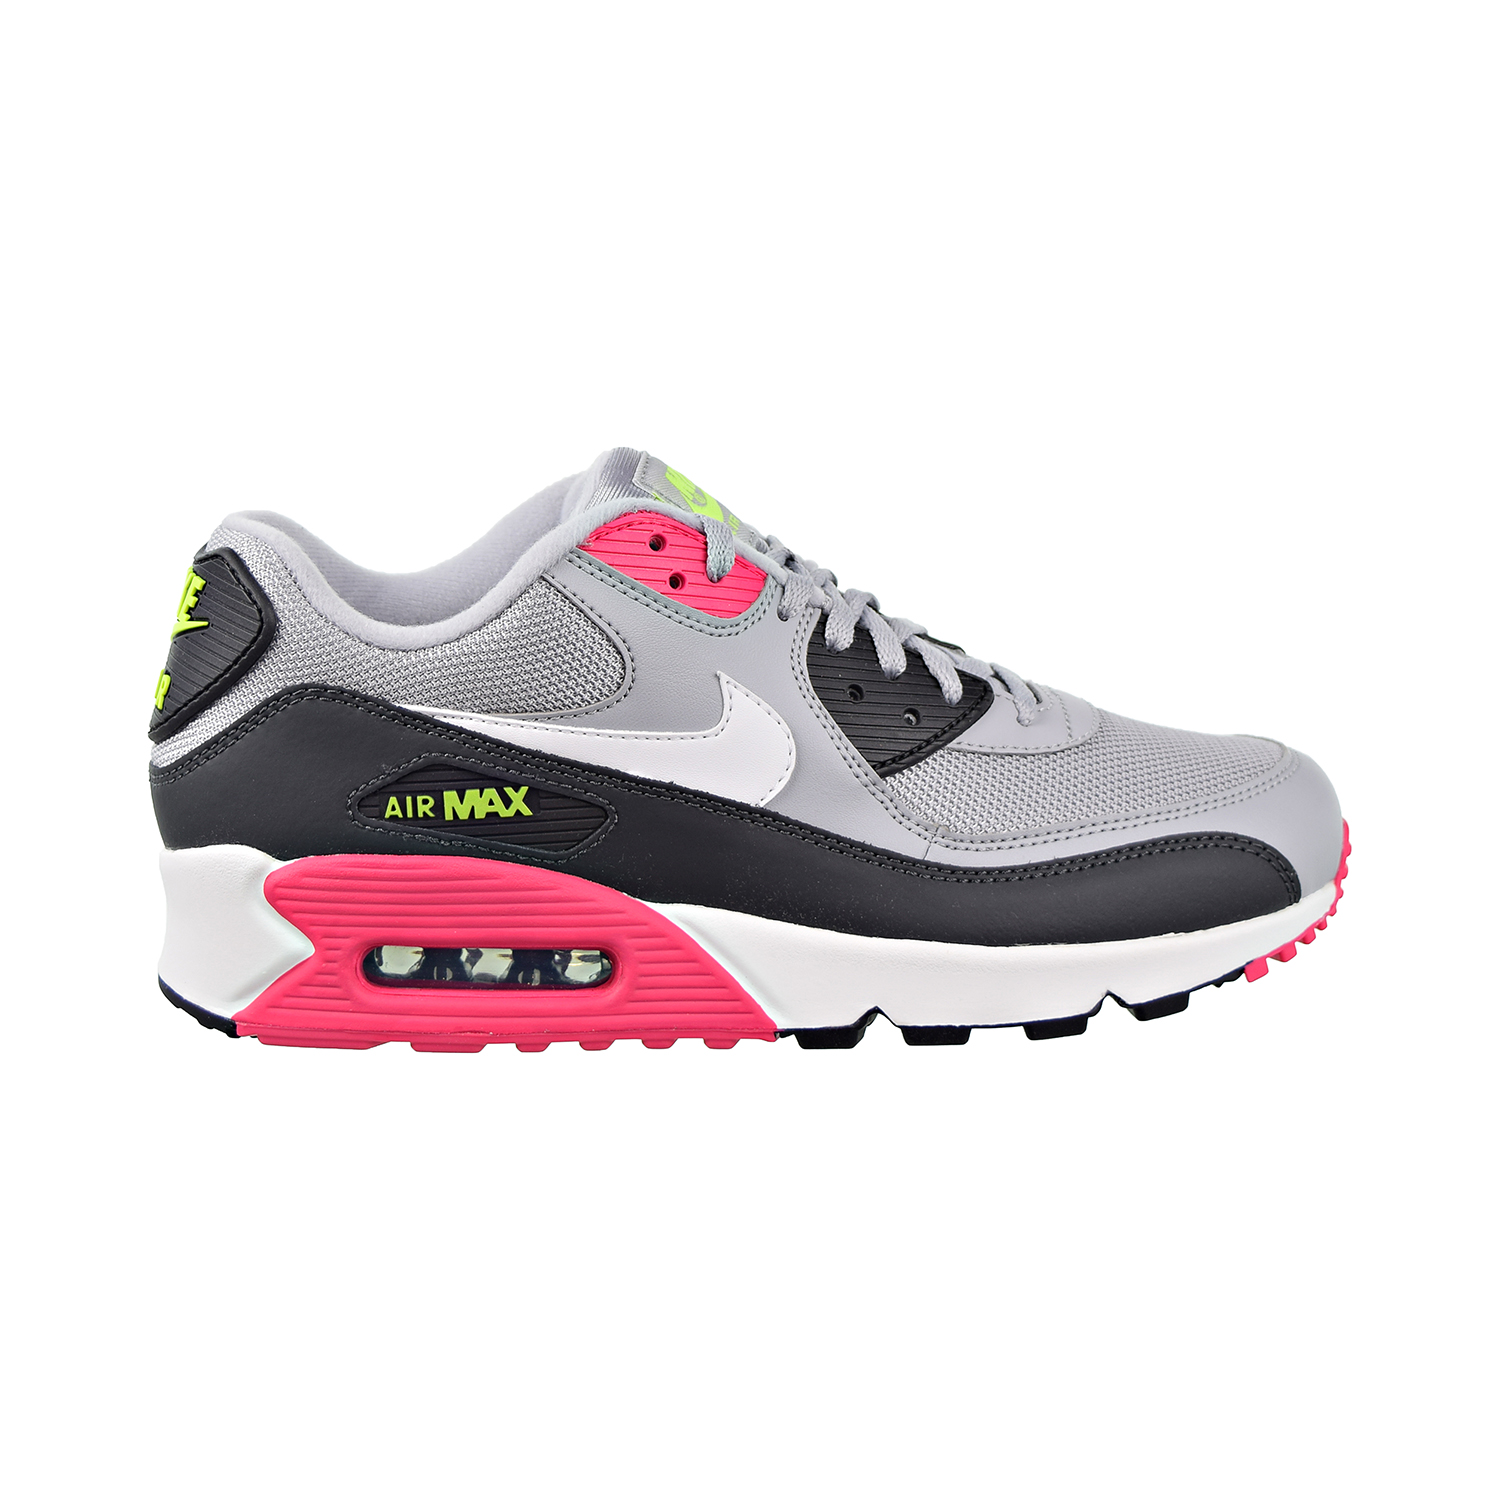 Details about Nike Air Max 90 Essential Mens Shoes Wolf Grey White Rush Pink Volt aj1285 020